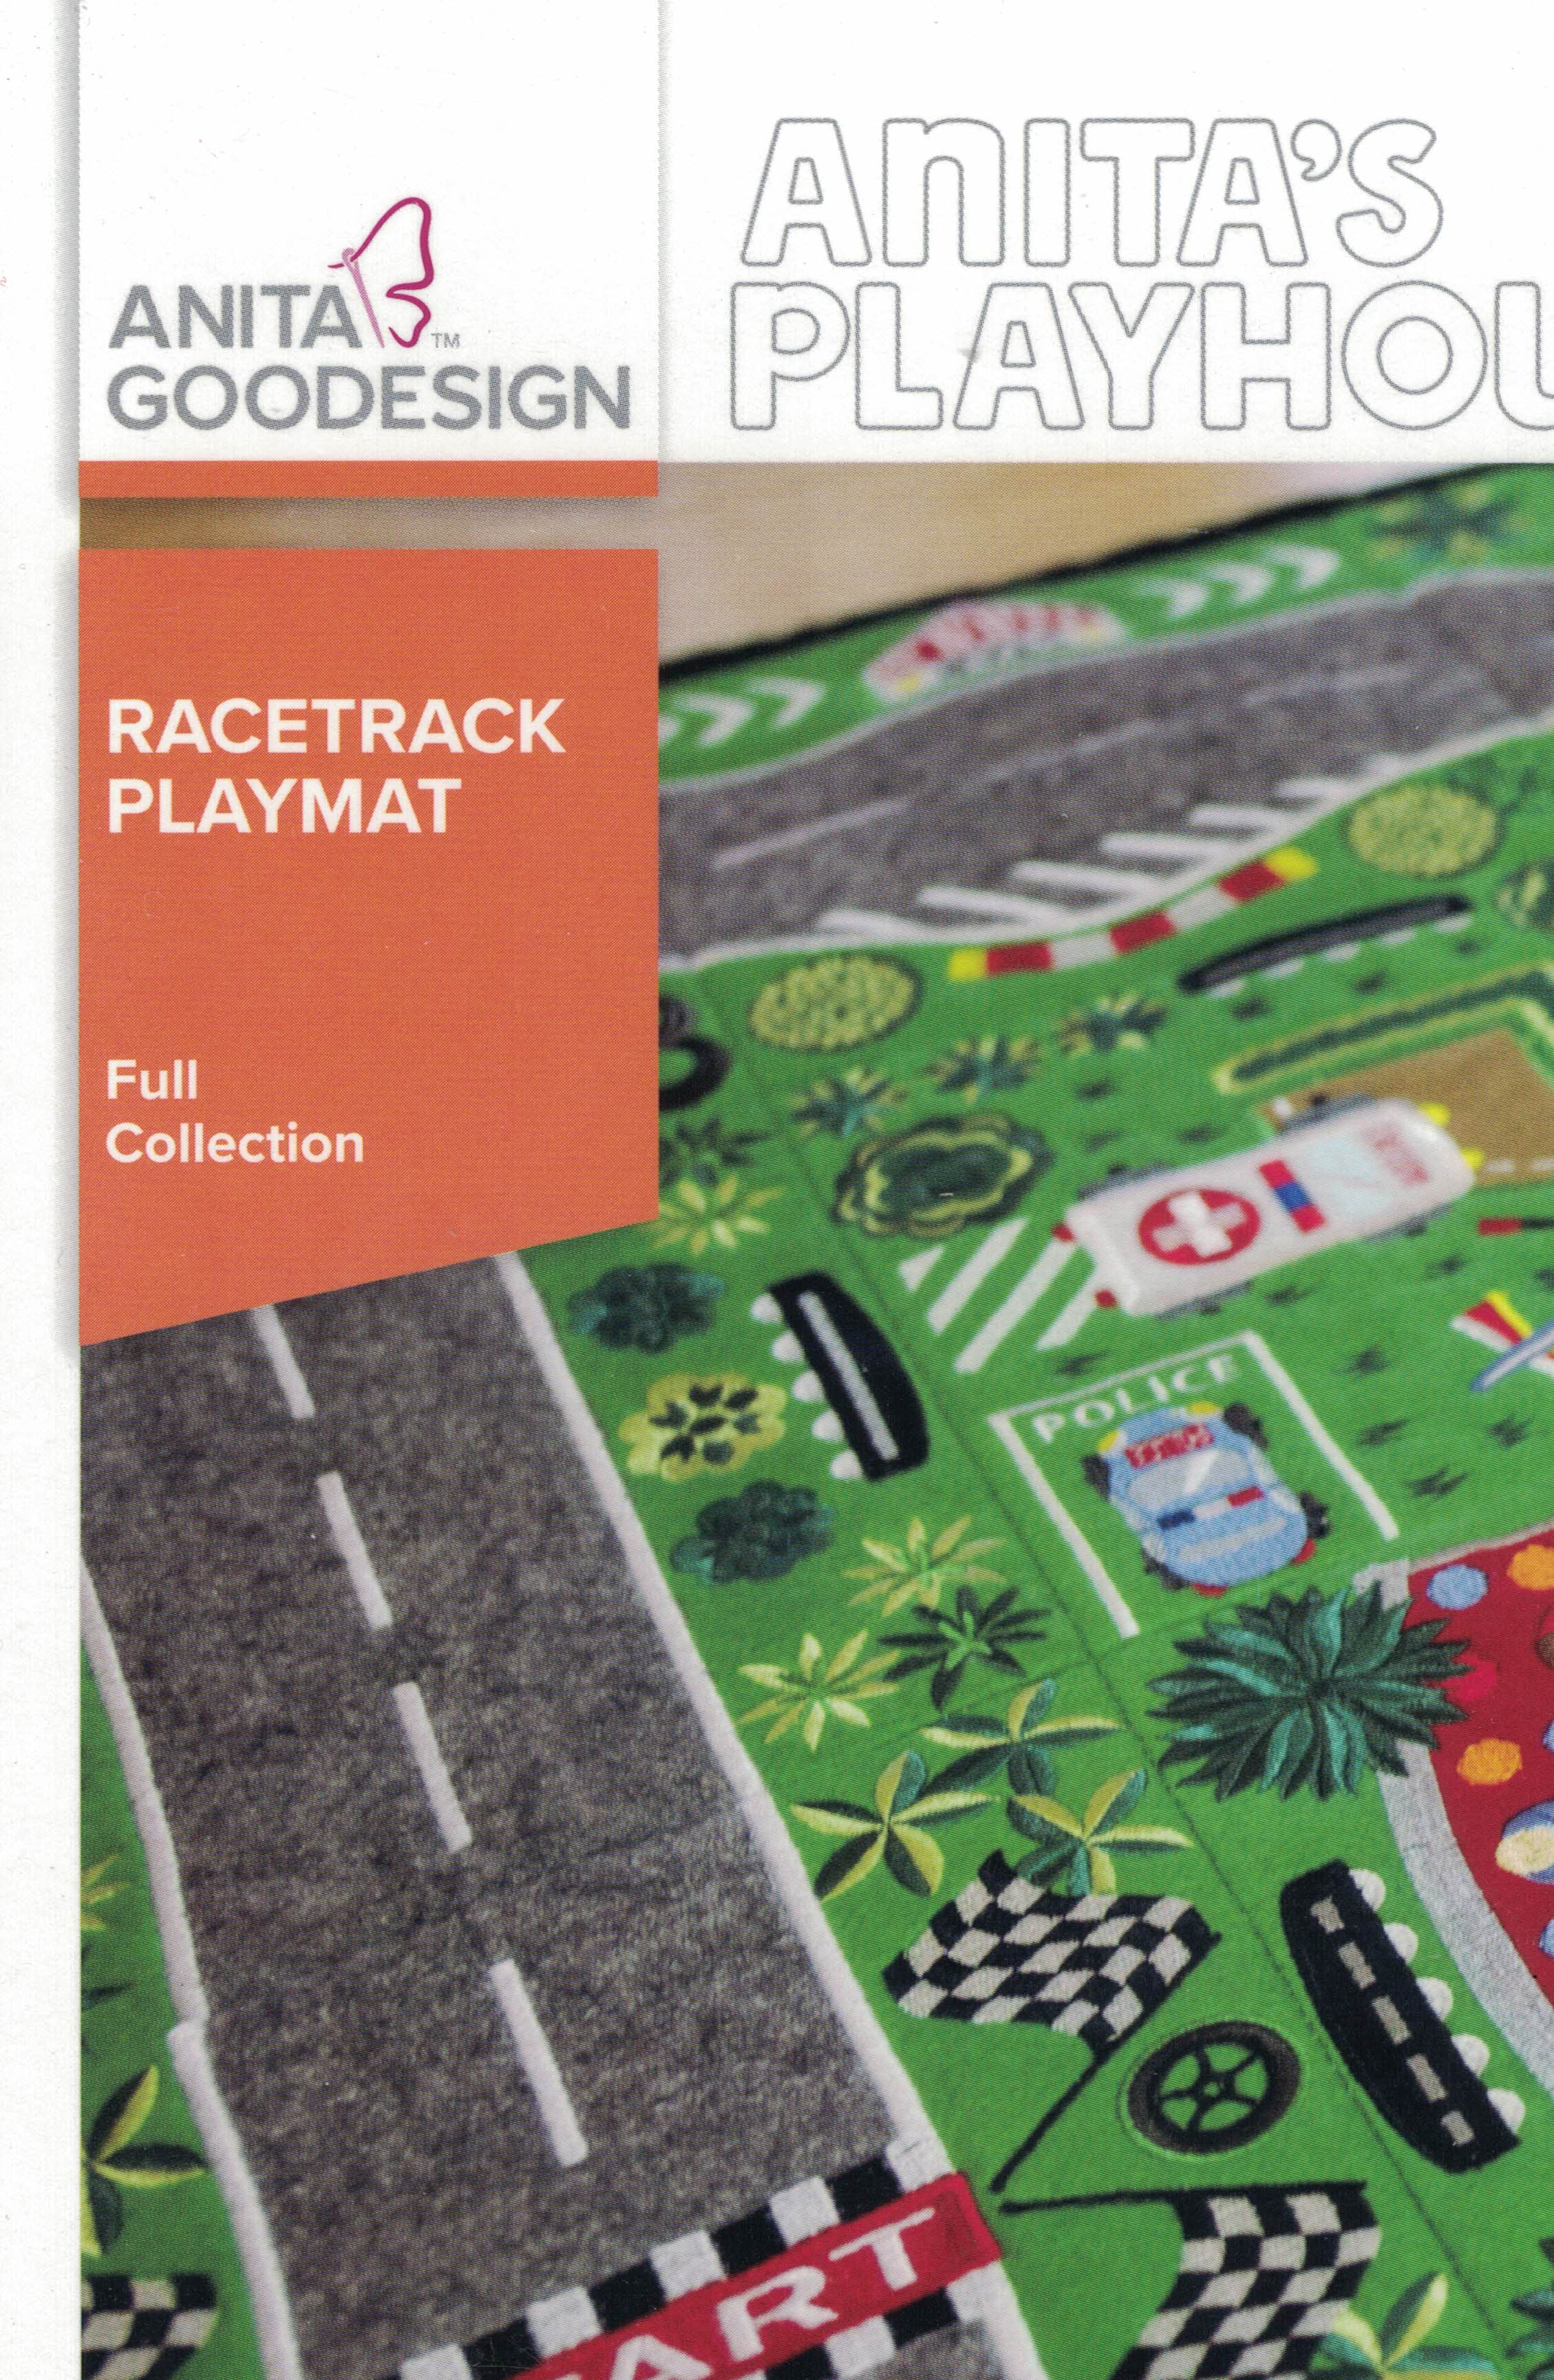 Racetrack Playmat Full Collection 359AGHD